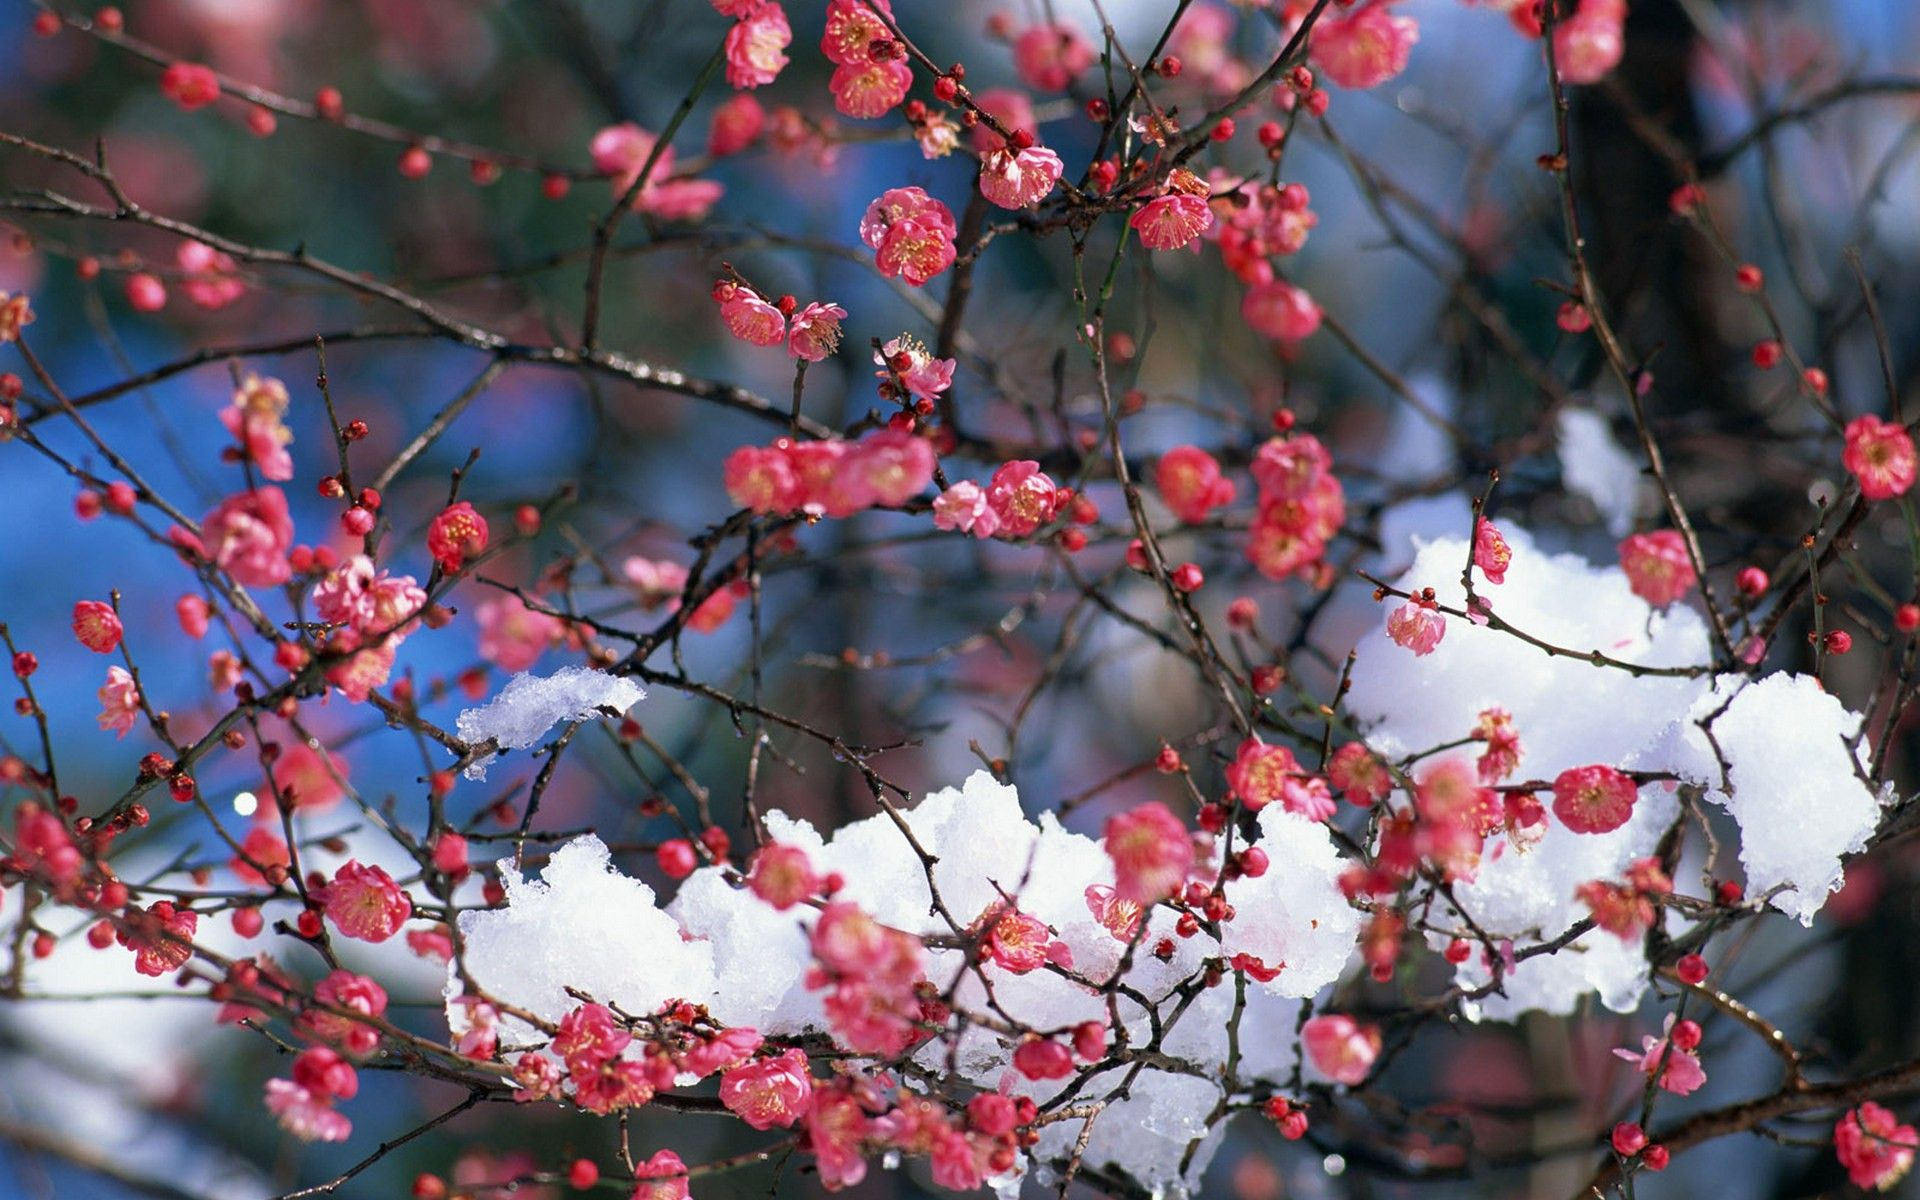 Japan Snow Cherry Blossoms Flowers Spring Pink Flowers